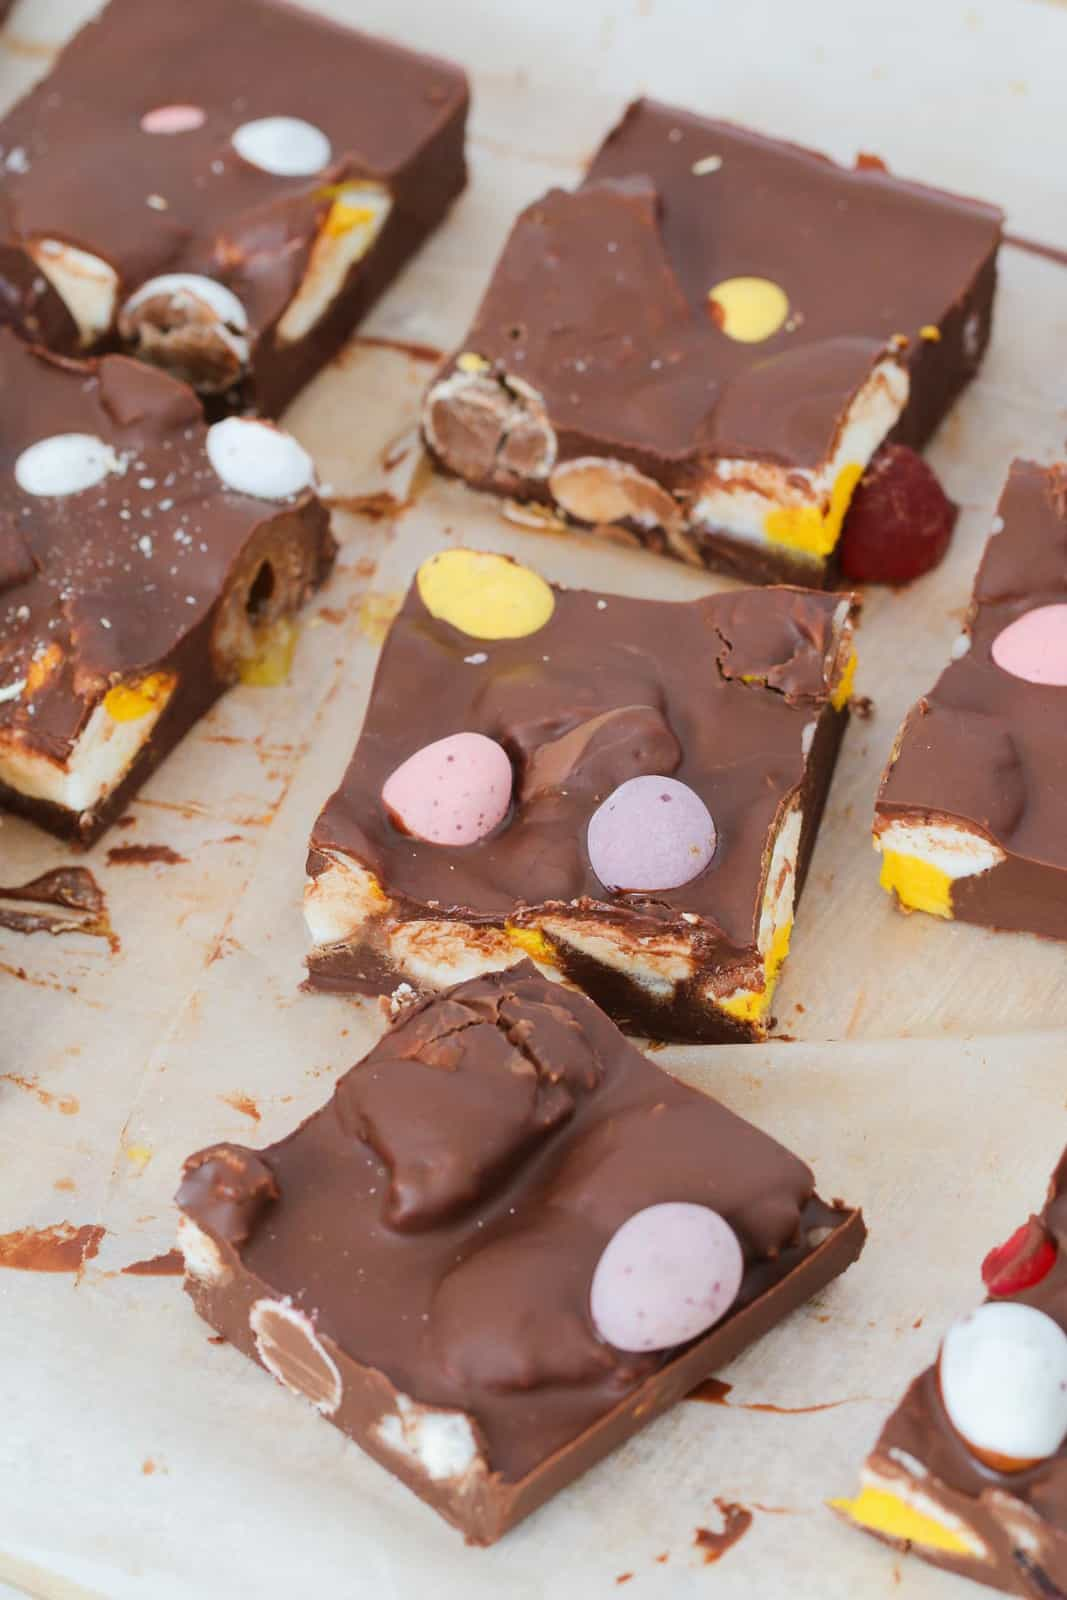 Baking paper with squares of Easter rocky road on top filled with Easter eggs and lollies.